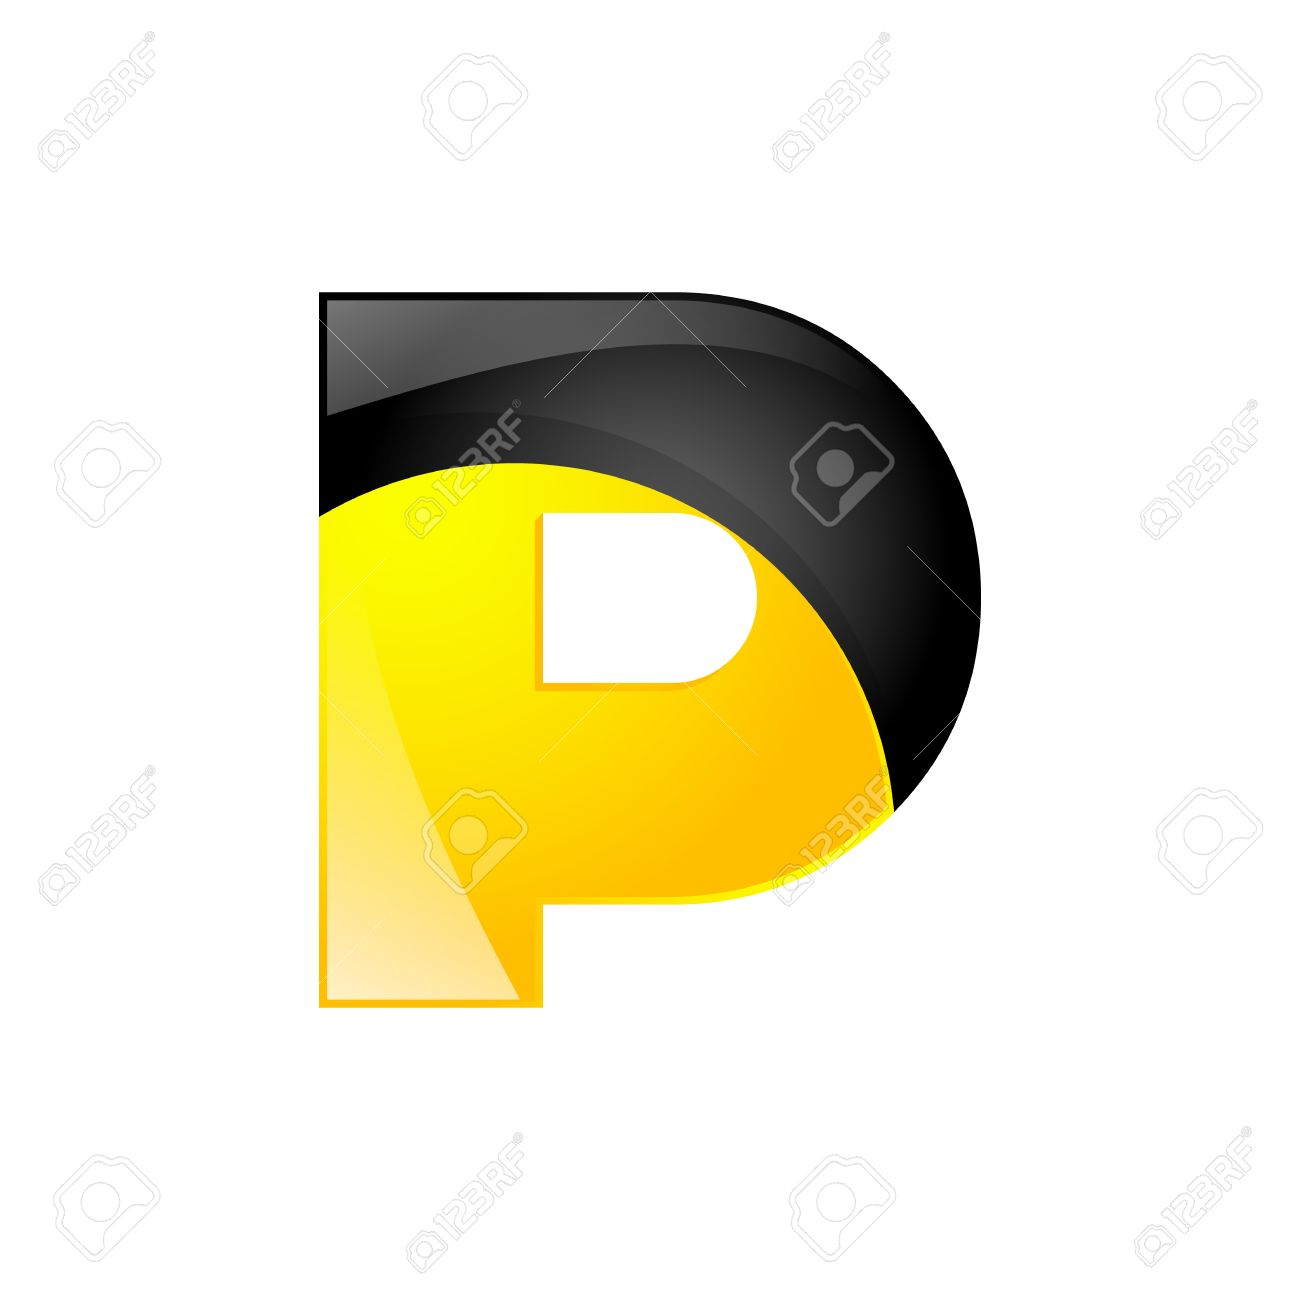 Creative Yellow And Black Symbol Letter P For Your Application Or Company Design Alphabet Graphics 3d